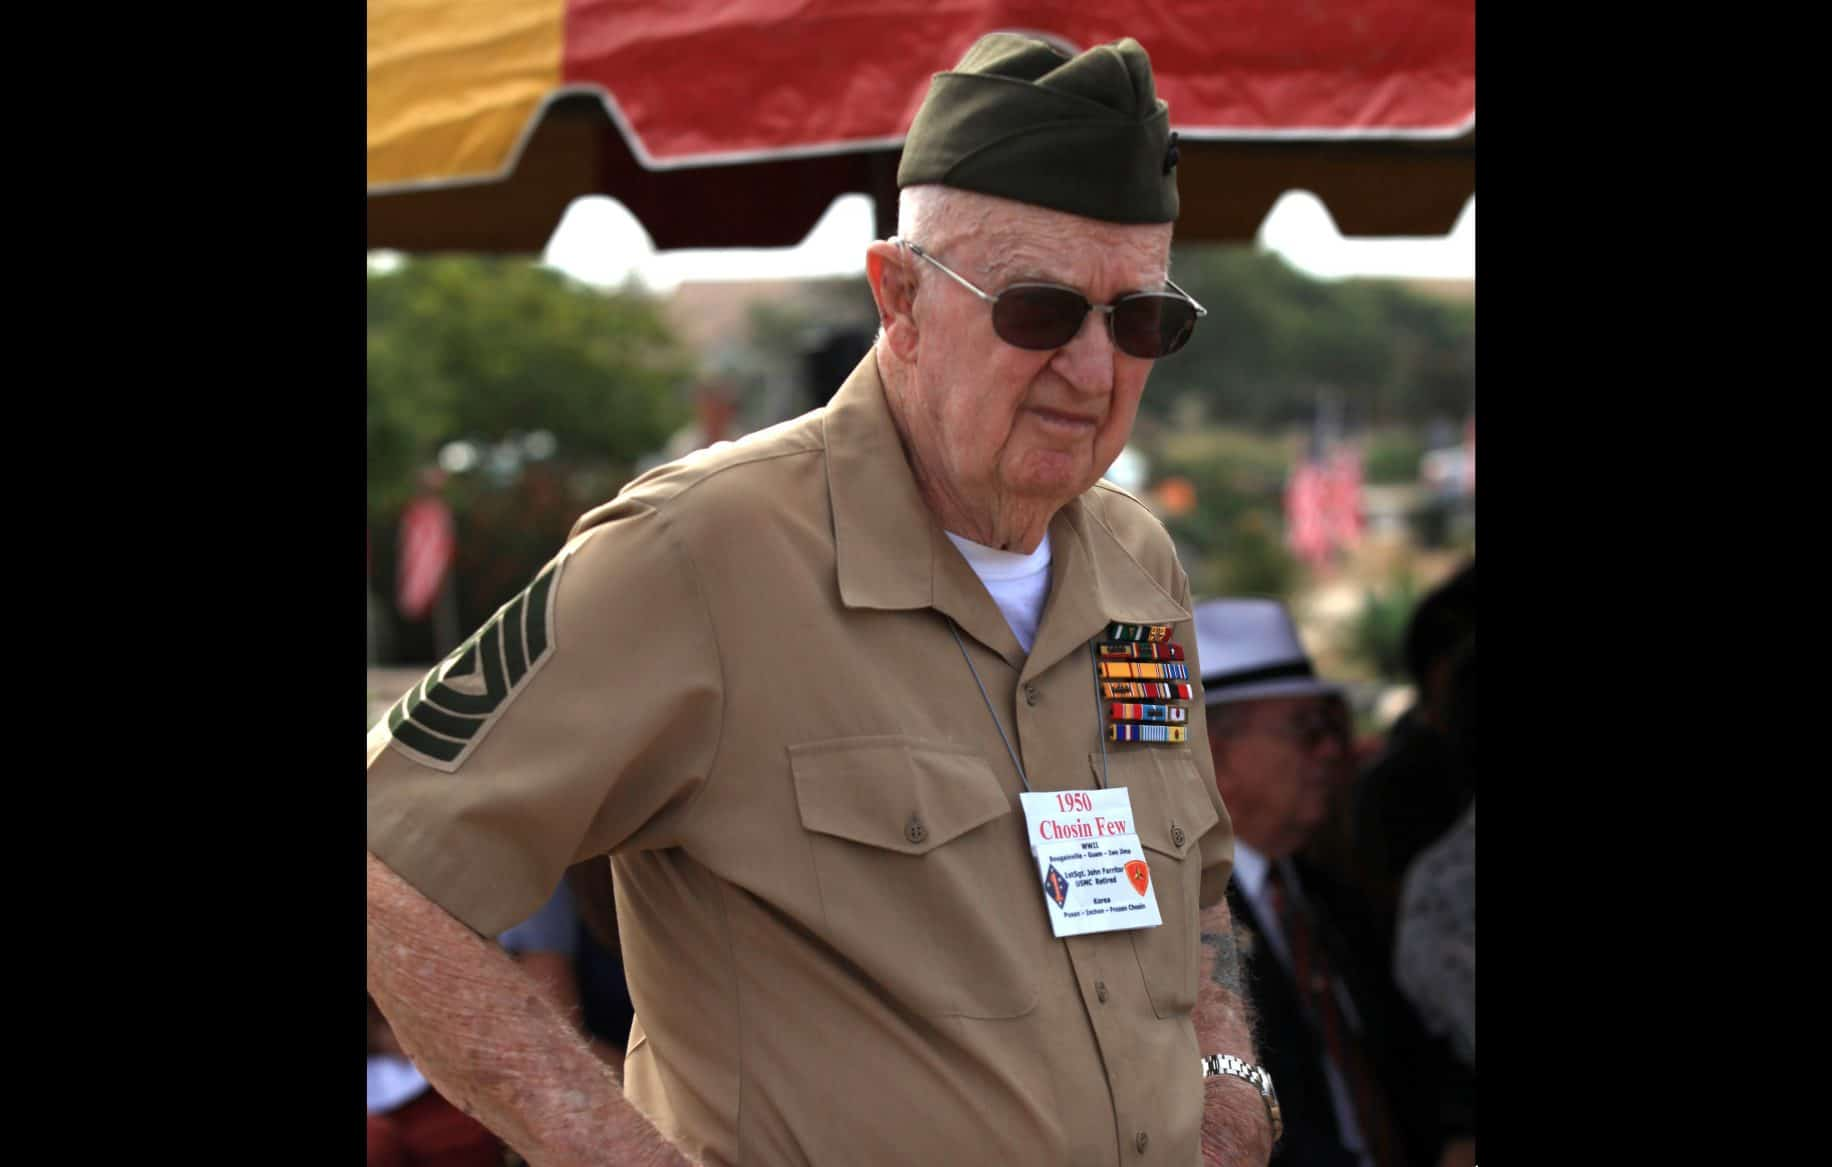 At 100, WWII and Korean War veteran honored for his place in Marine Corps history